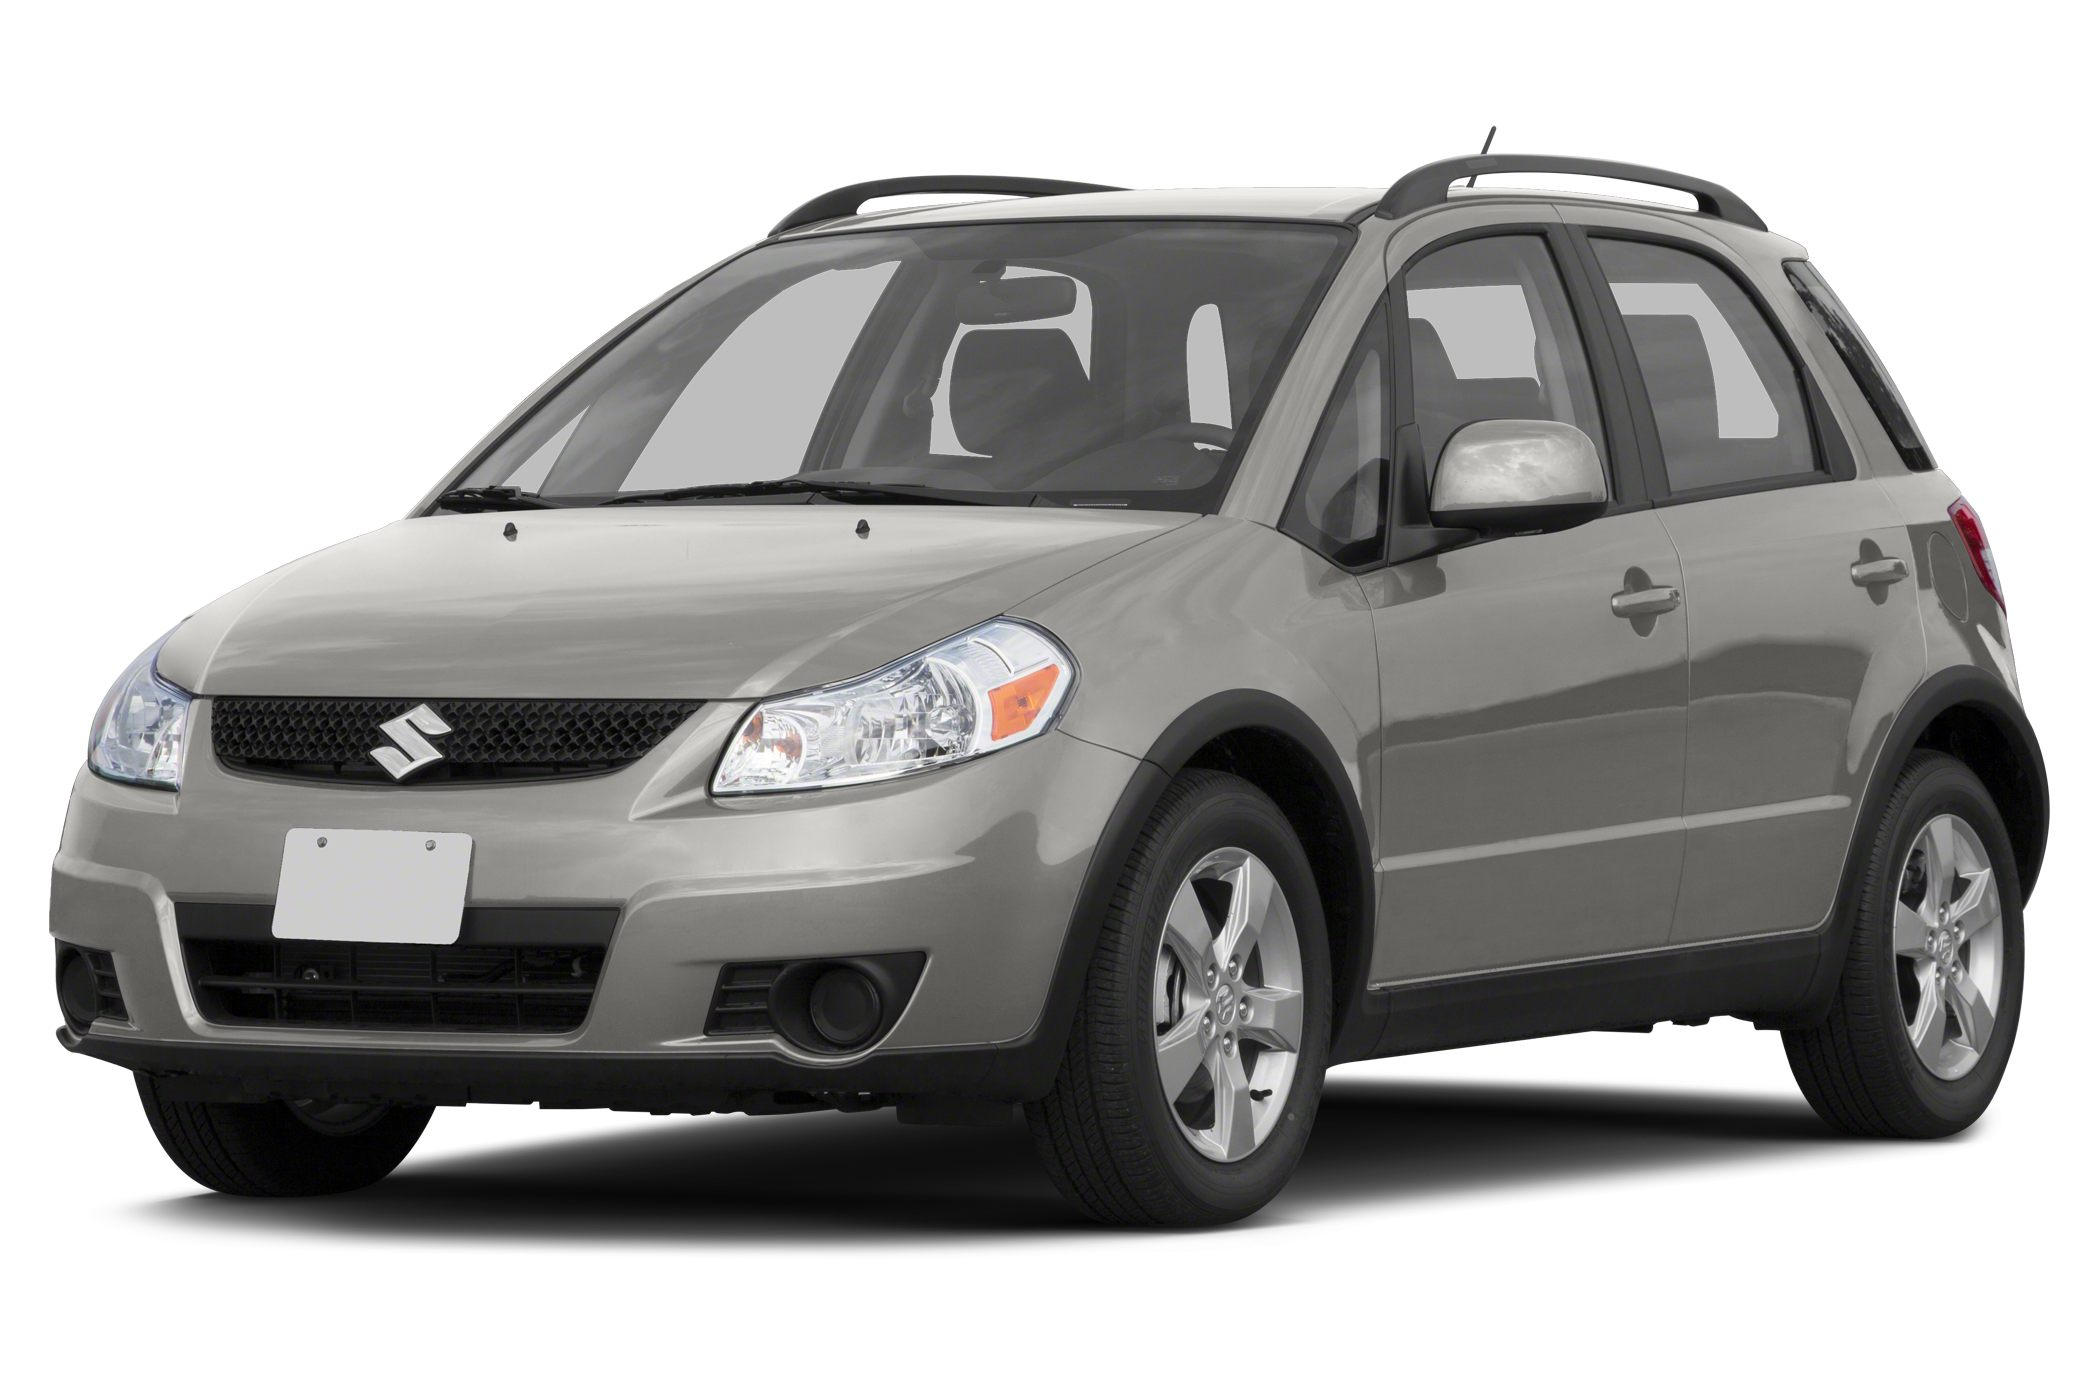 2013 Suzuki SX4 Technology Hatchback for sale in Wellington for $12,995 with 28,429 miles.